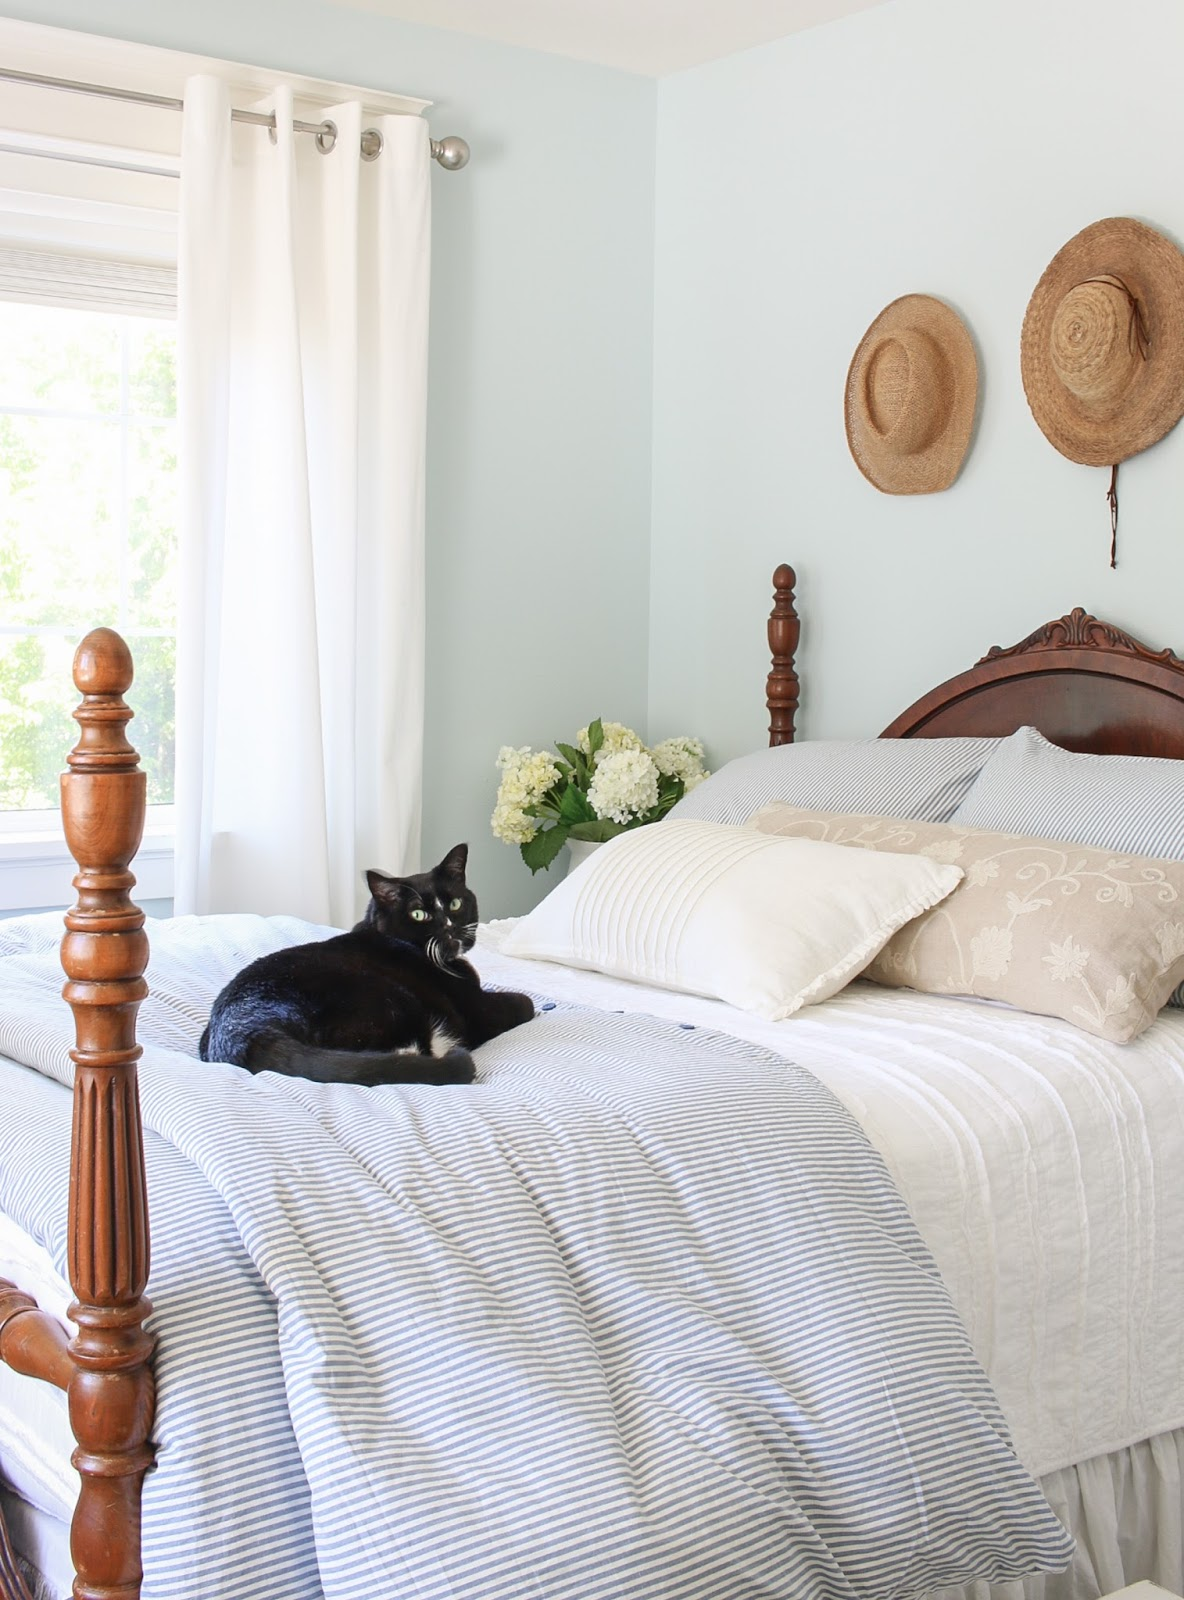 black cat on a bed with blue and white striped duvet cover